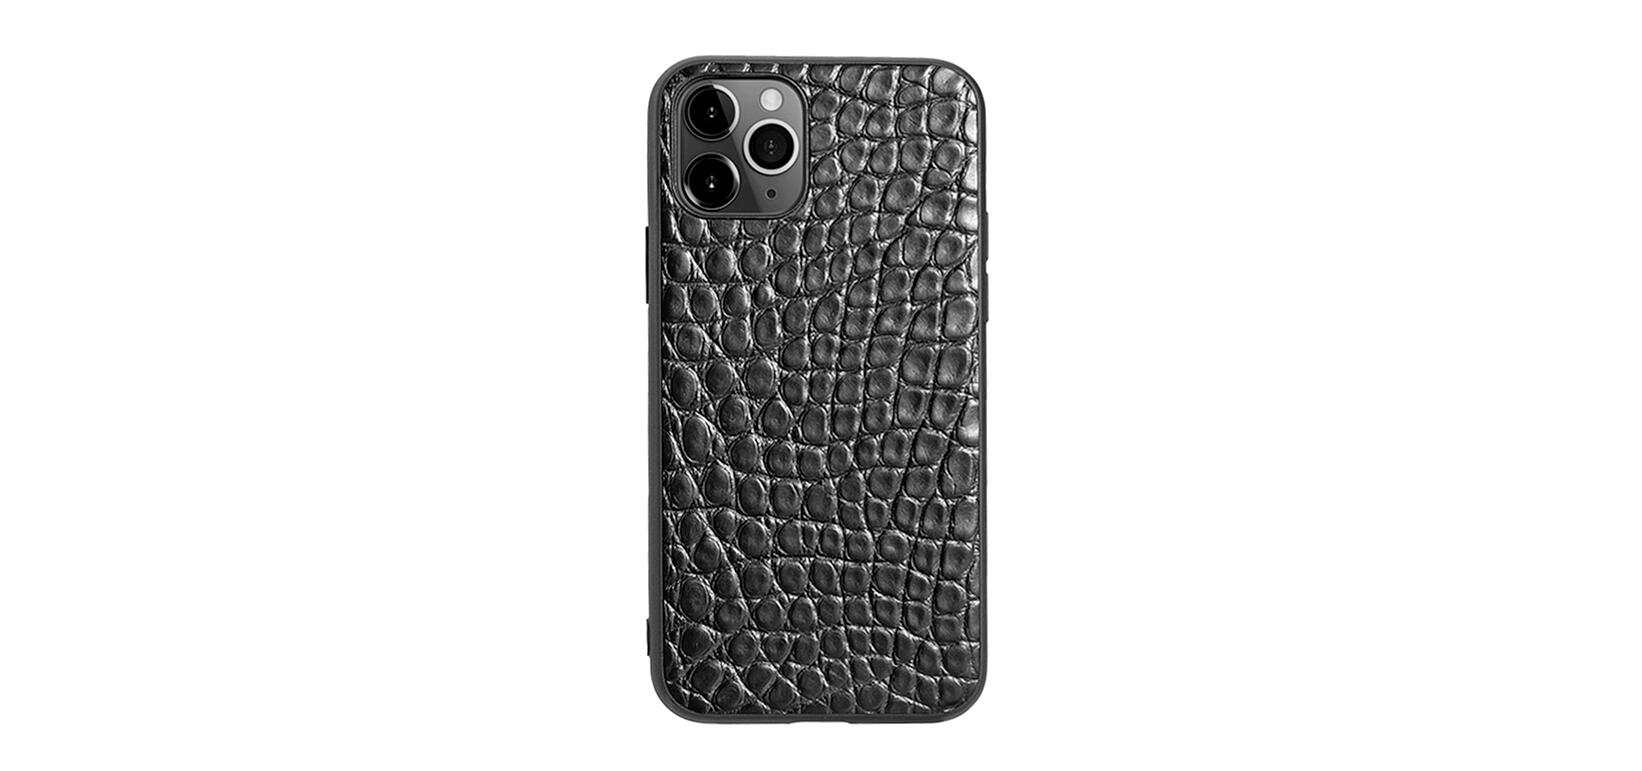 Luxury iPhone 13 Pro and iPhone 13 Pro Max Cases